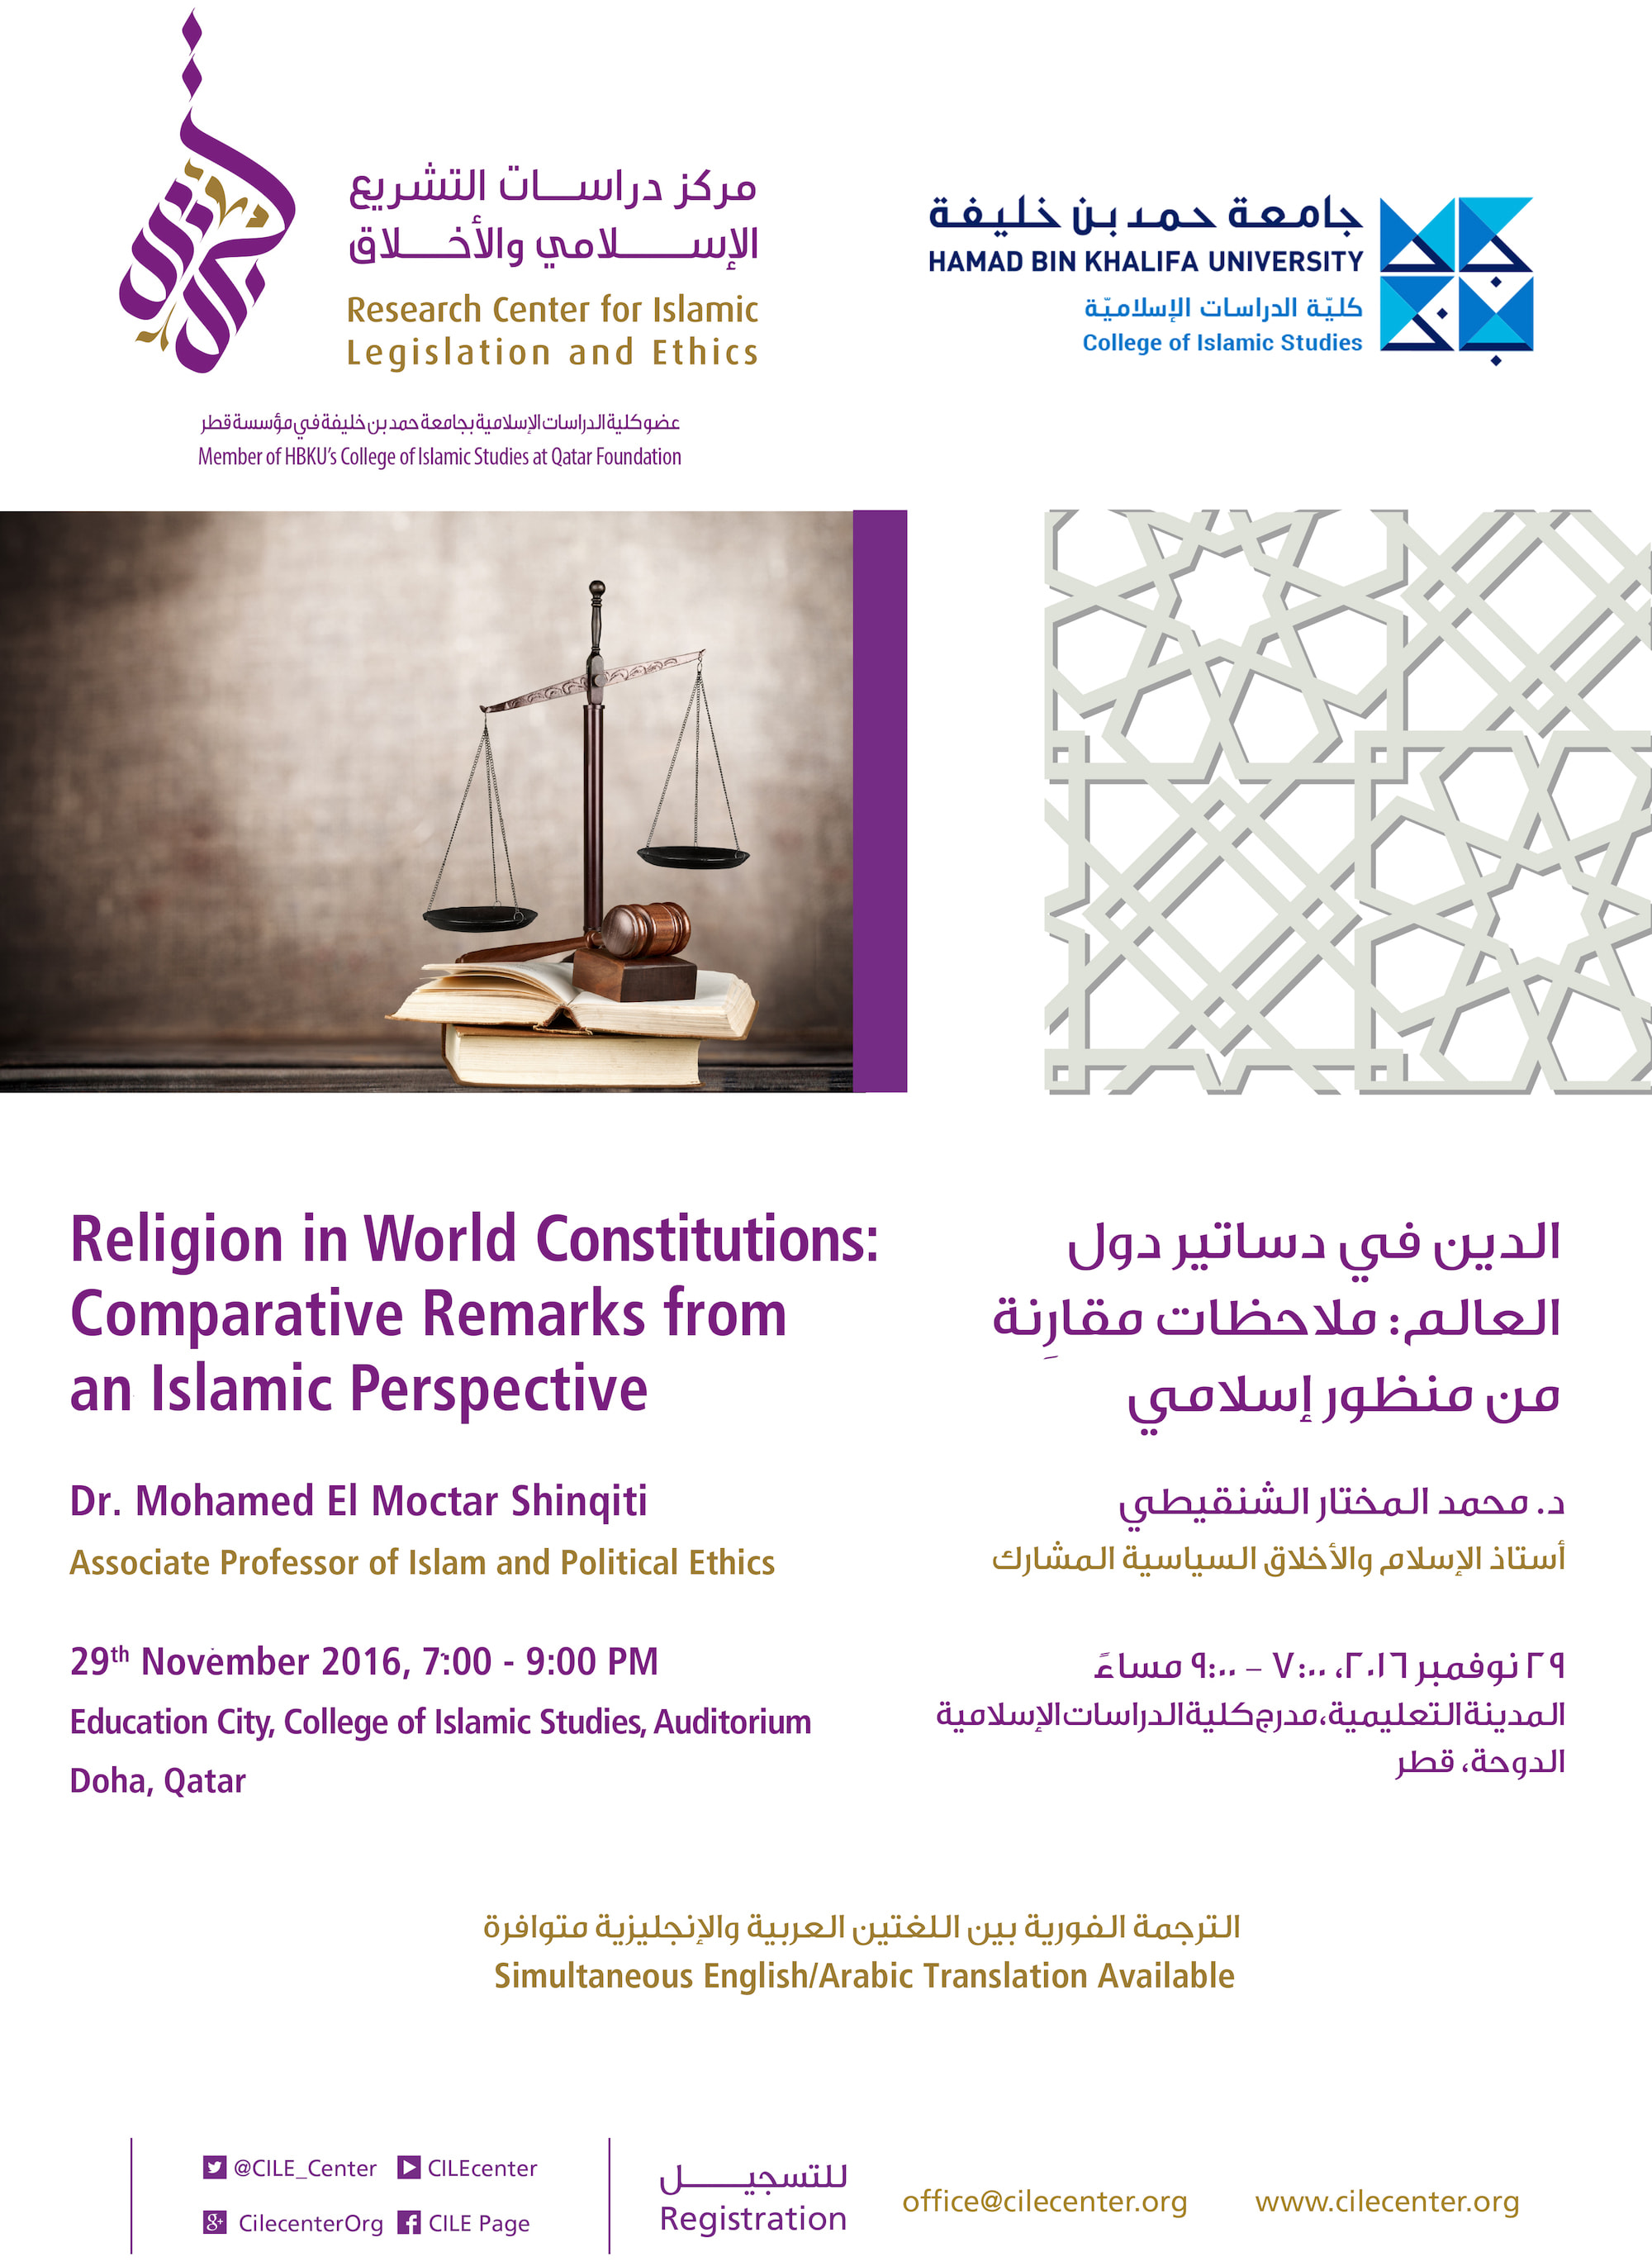 11/2016 Religion in World Constitutions: Comparative Remarks from an Islamic Perspective